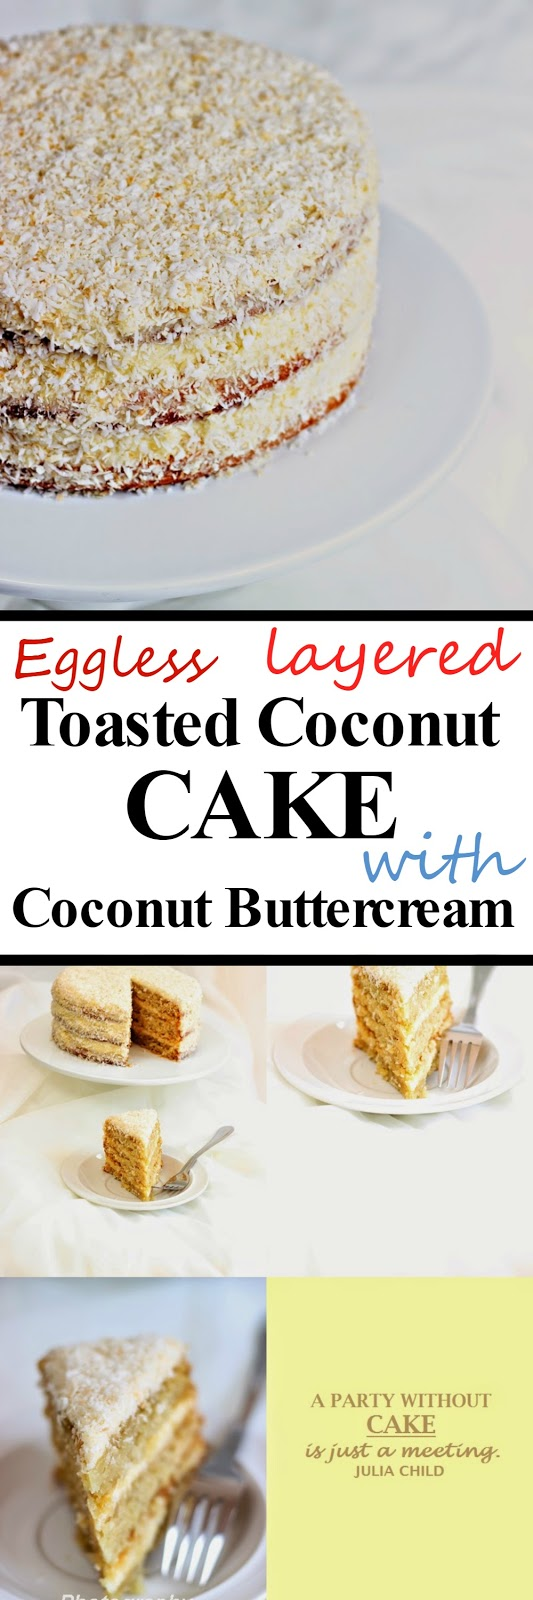 Toasted Coconut Cake Frosting